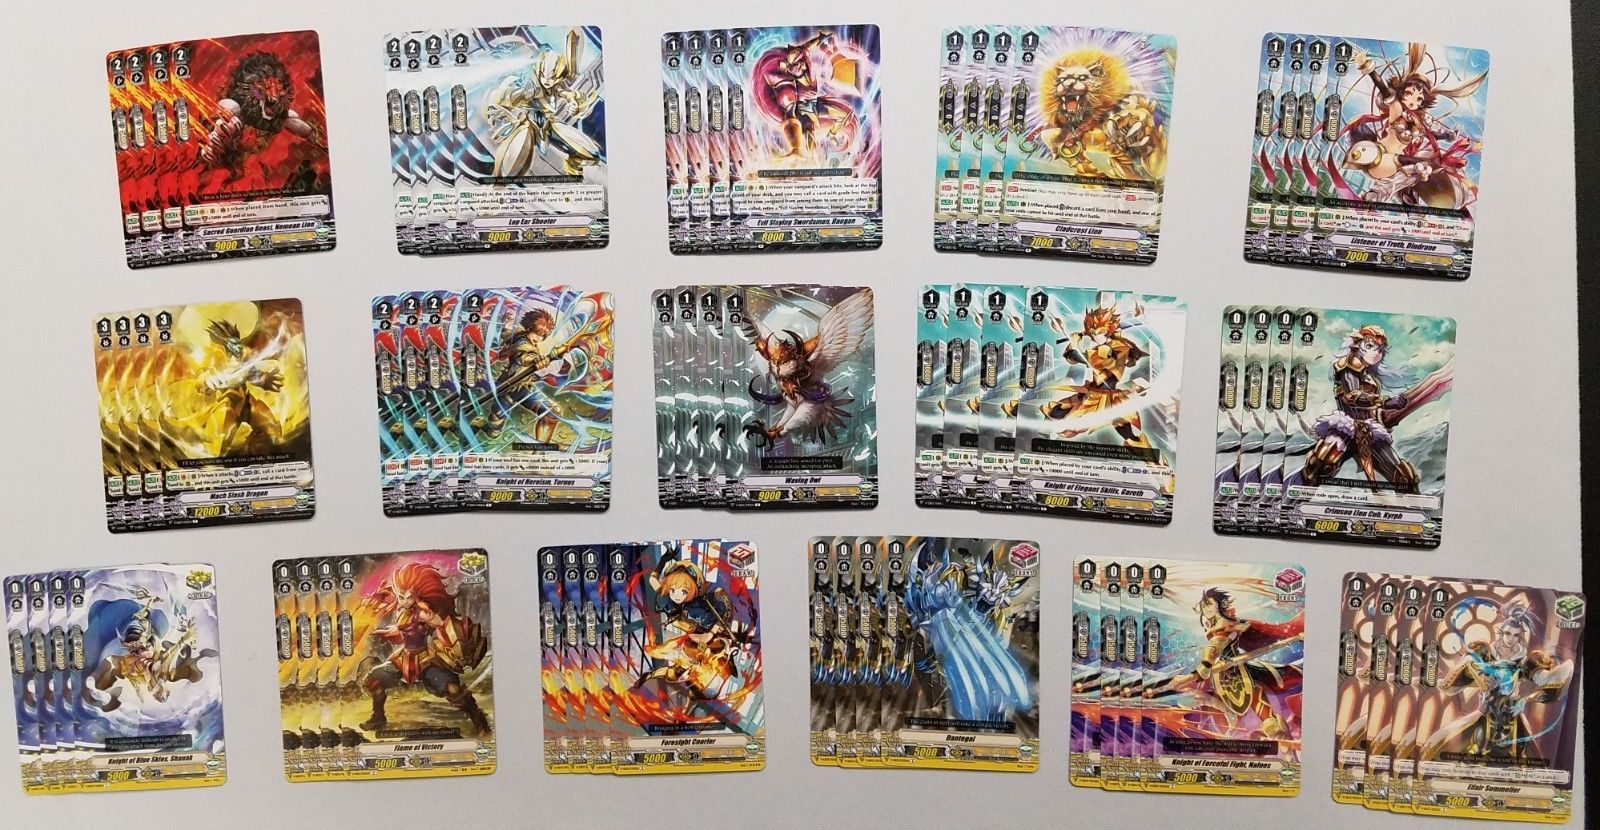 8a5abaa1d0 Other CCG Items 2535: V-Eb03 Ultrarare Miracle Collection- Rares Commons  Playset (X4) - Gold Paladin -> BUY IT NOW ONLY: $15 on #eBay #other #items  ...